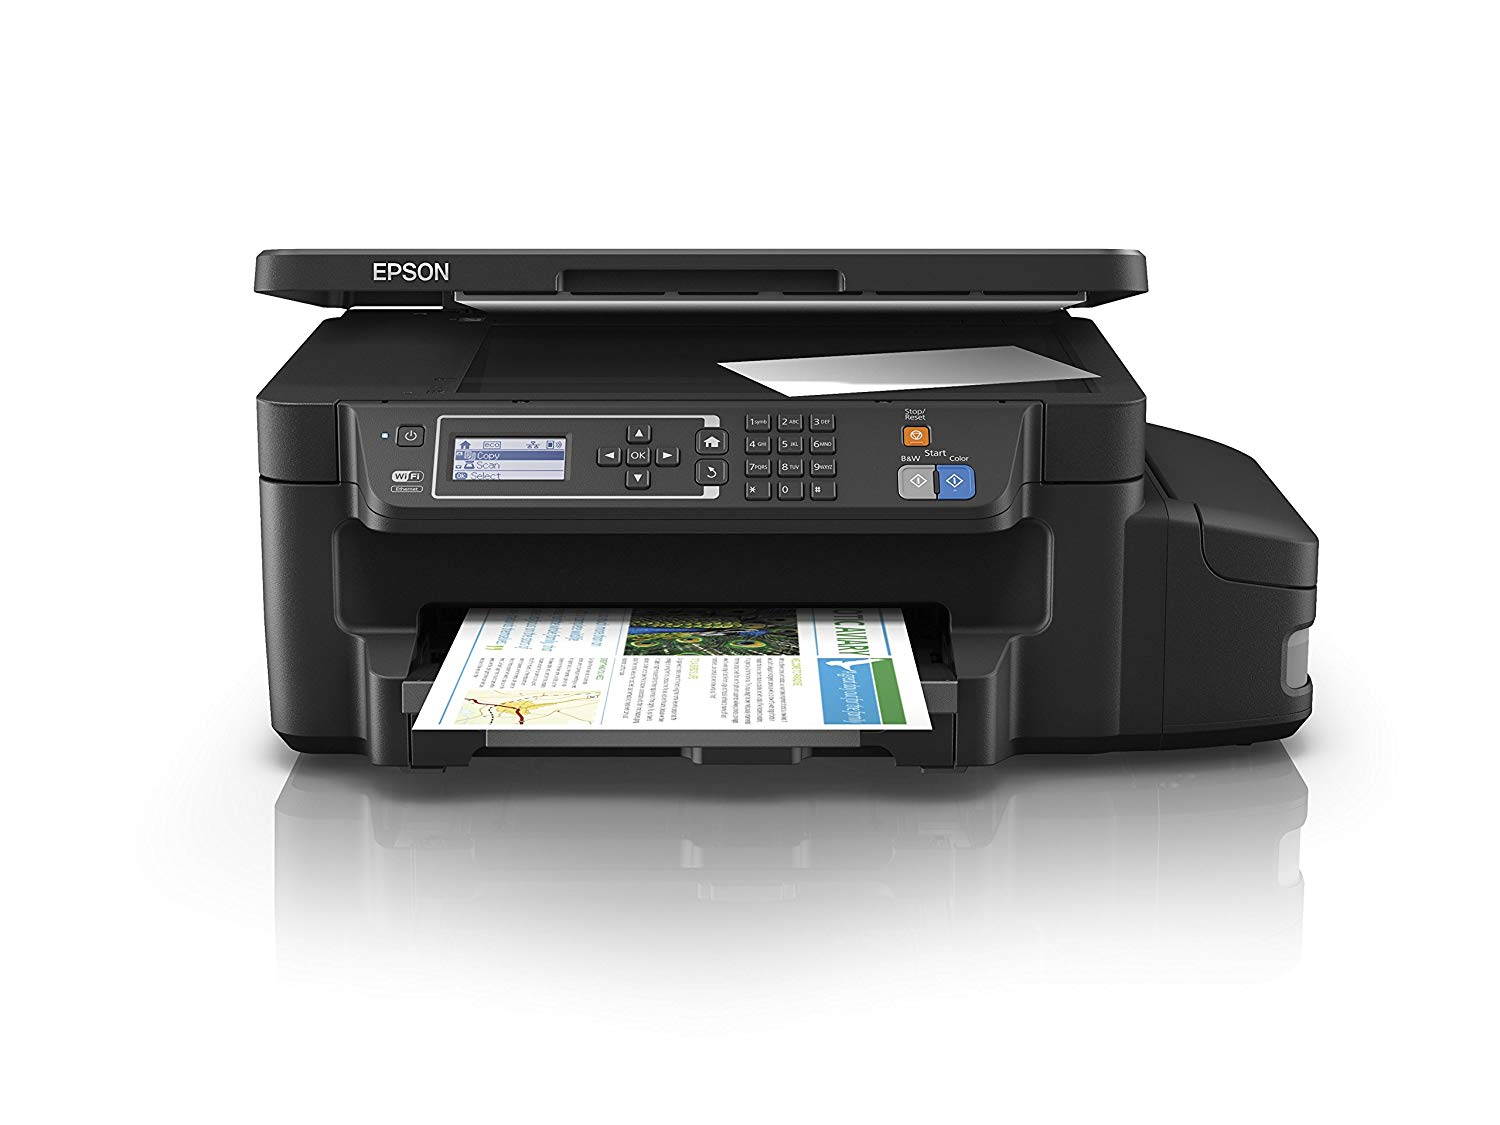 Epson L605 All-in-One Wireless Ink Tank Image